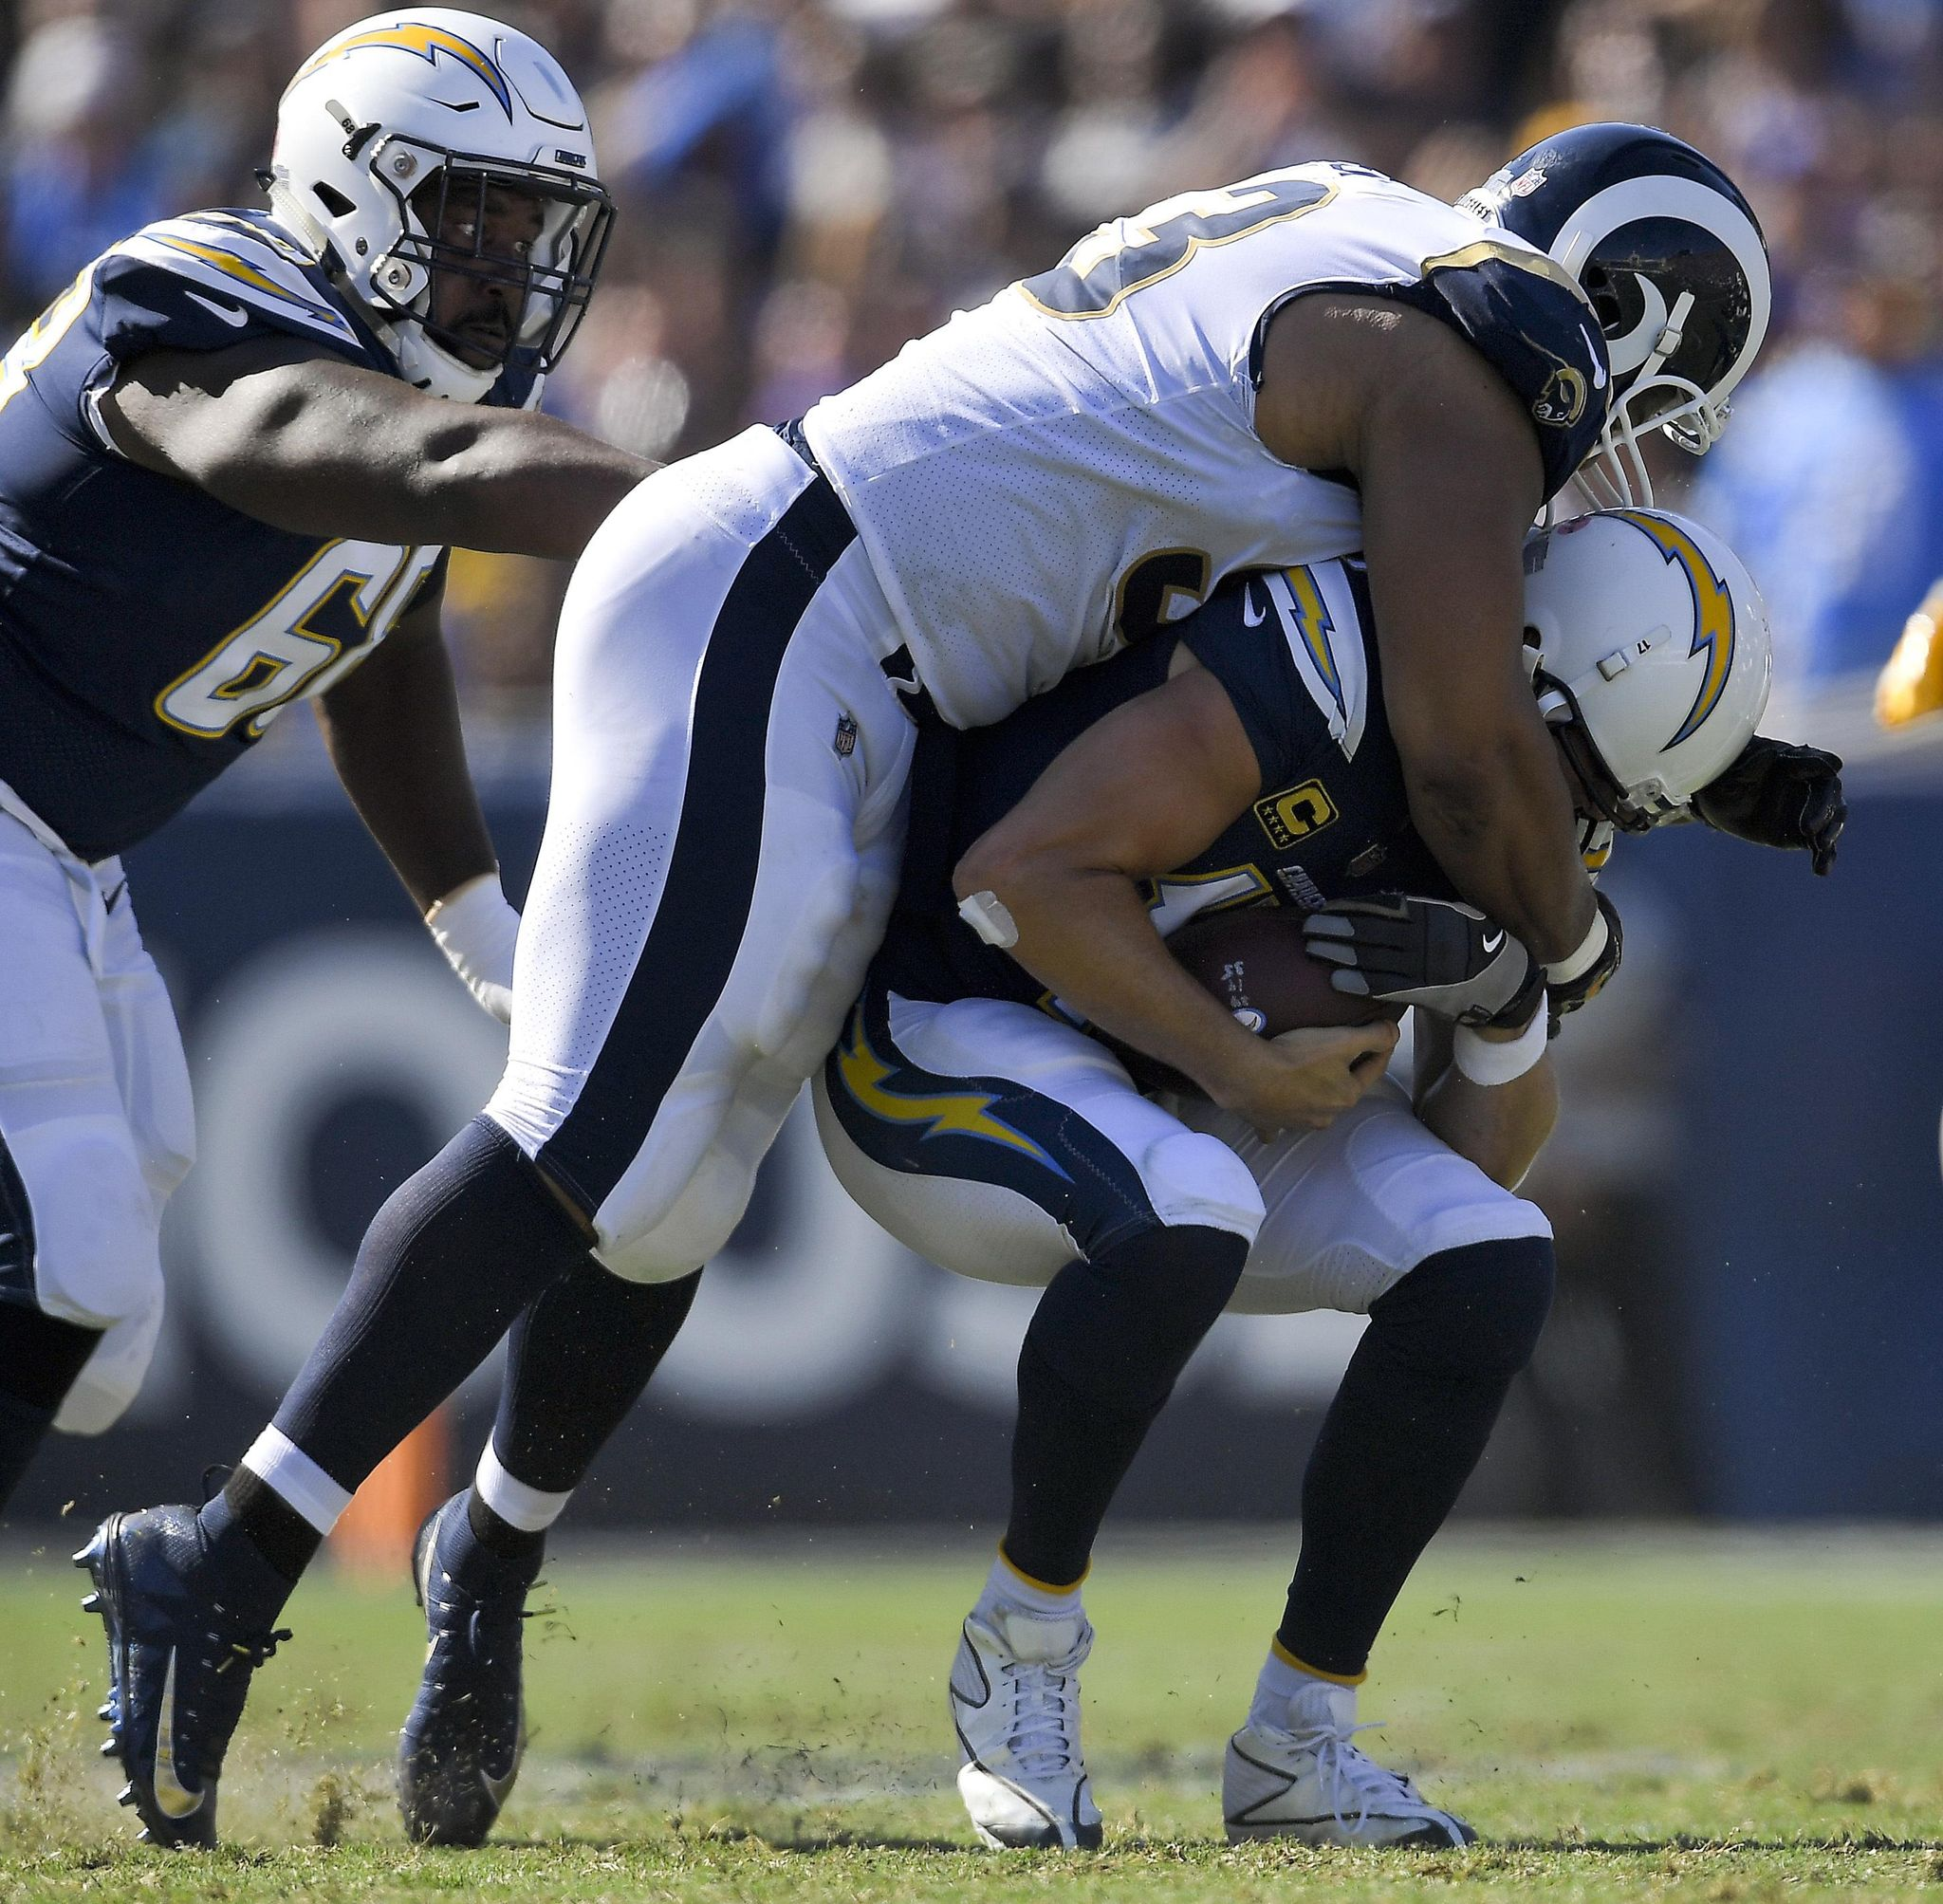 Rams rack up big numbers to beat Bolts in 1st fight for LA - Washington Times